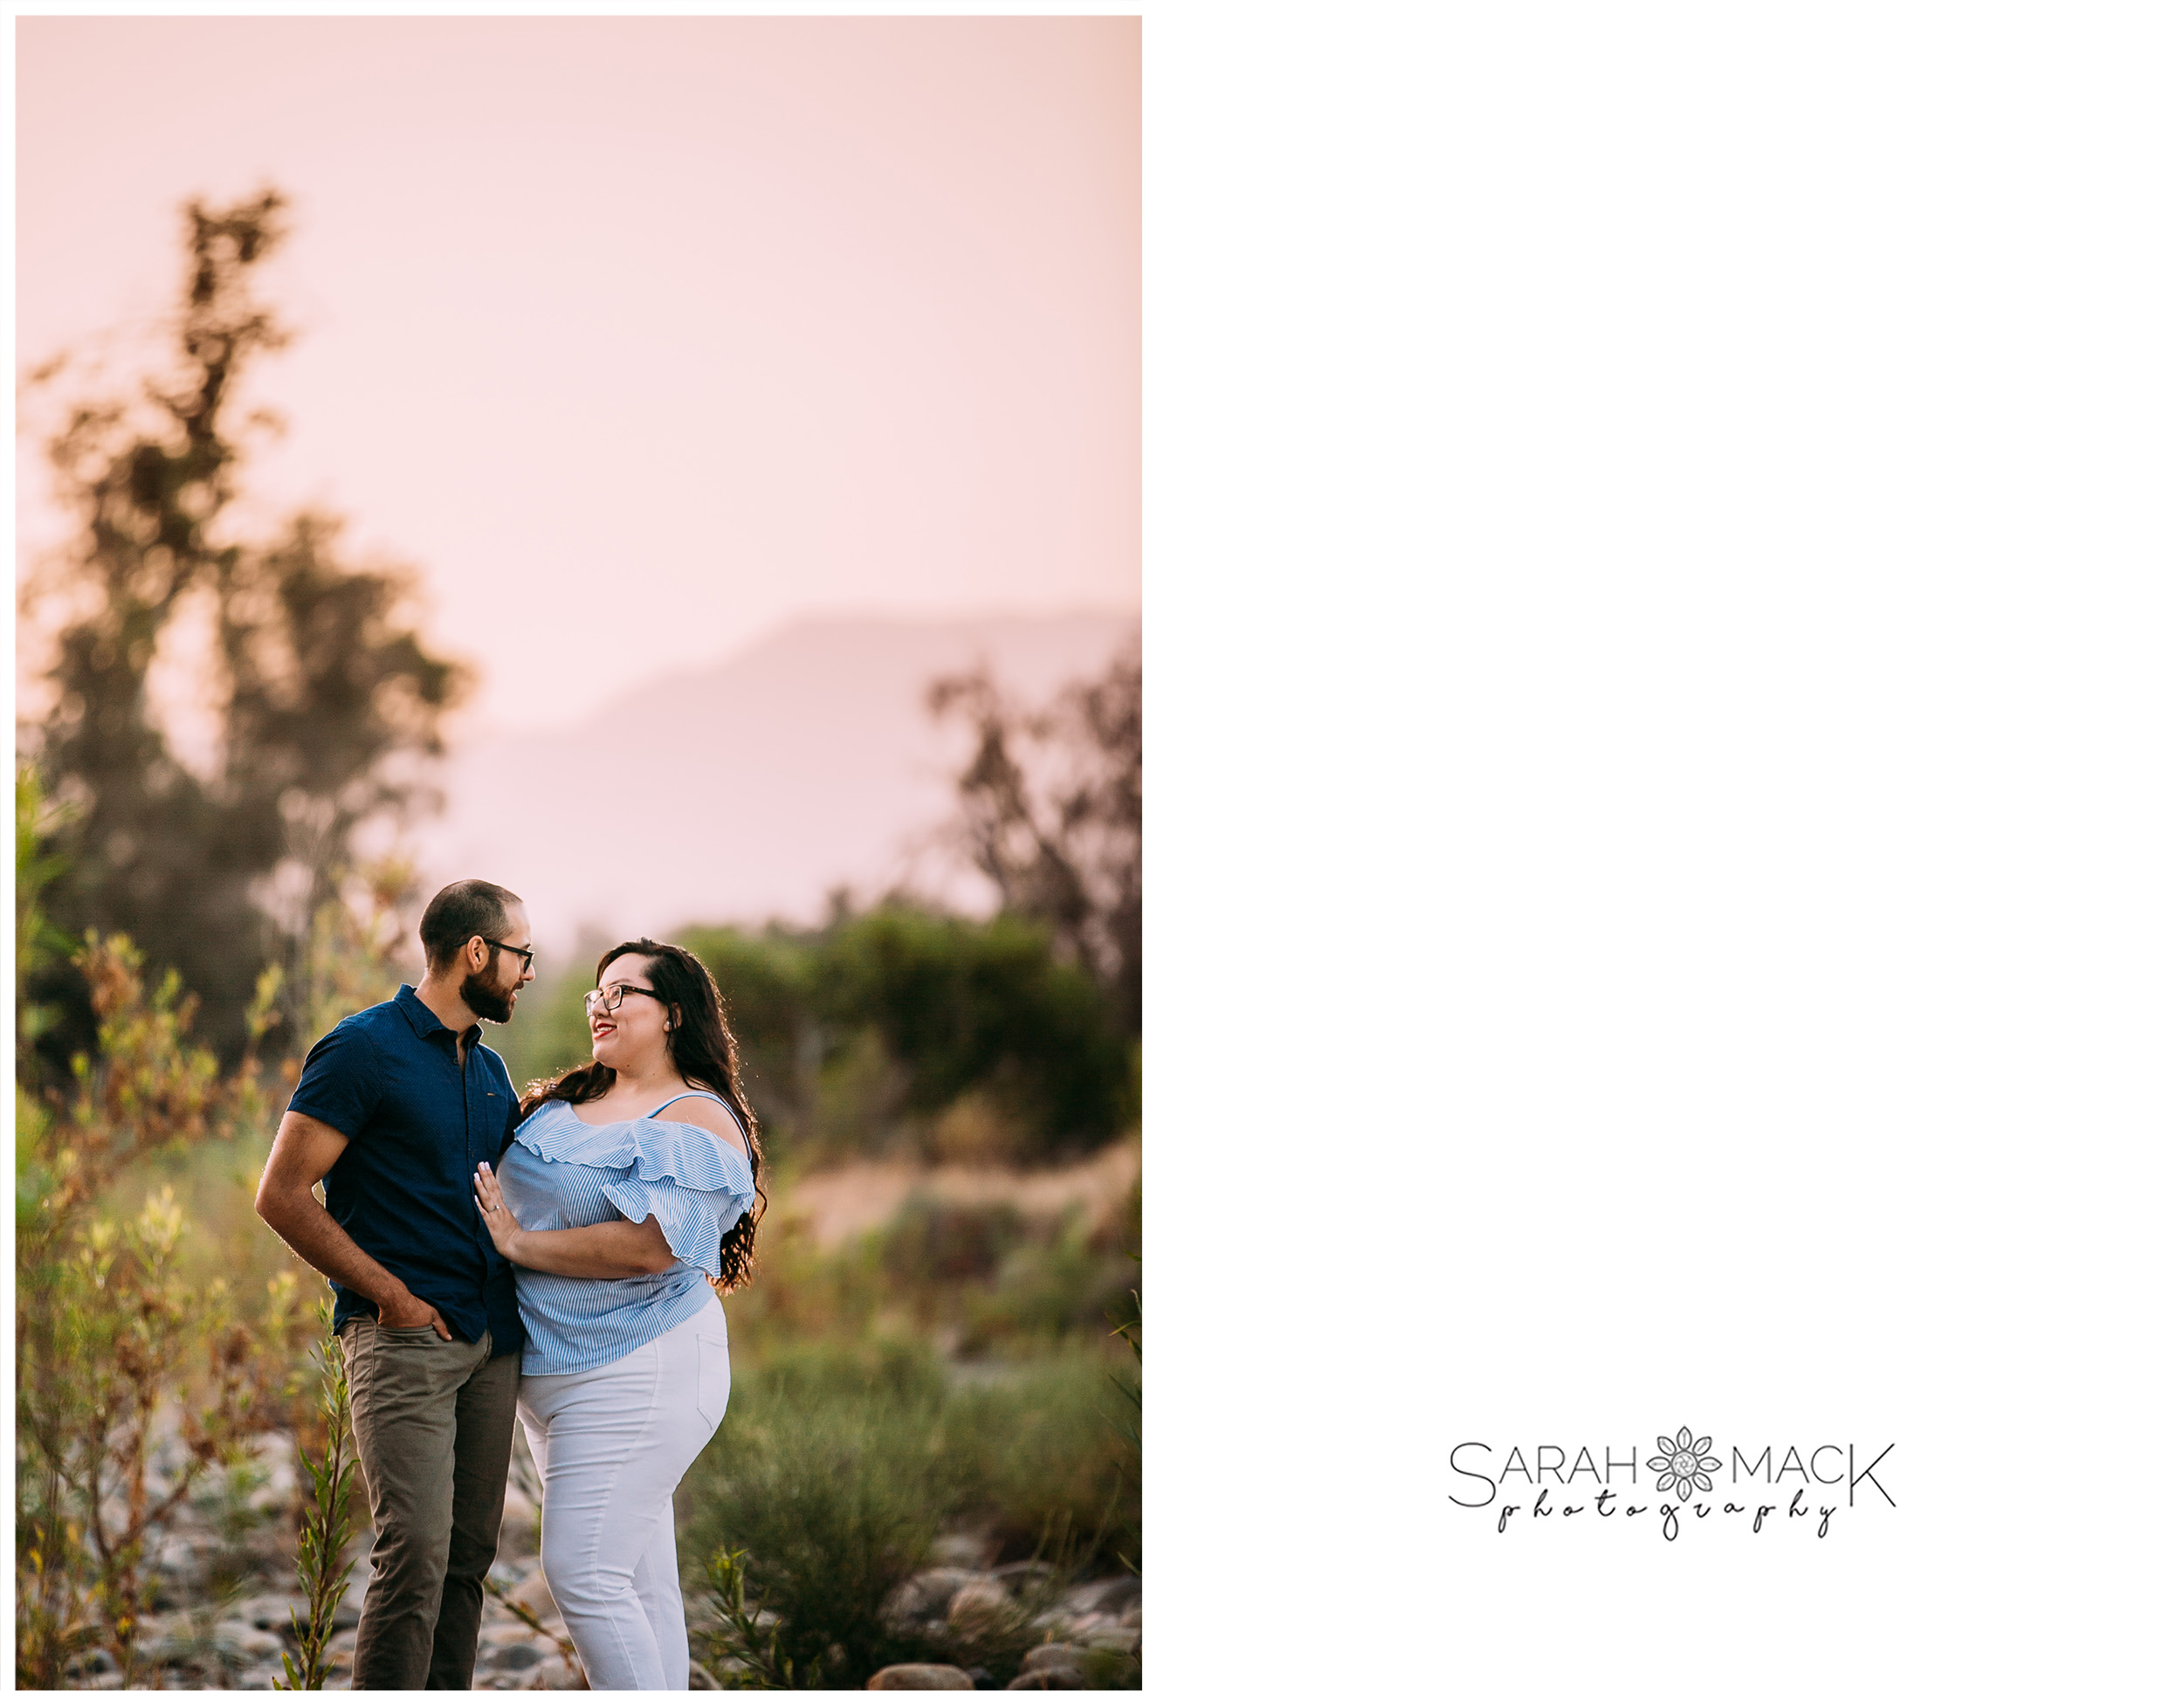 CK-Orange-County-Caspers-Park-Engagement-Photography-12.jpg